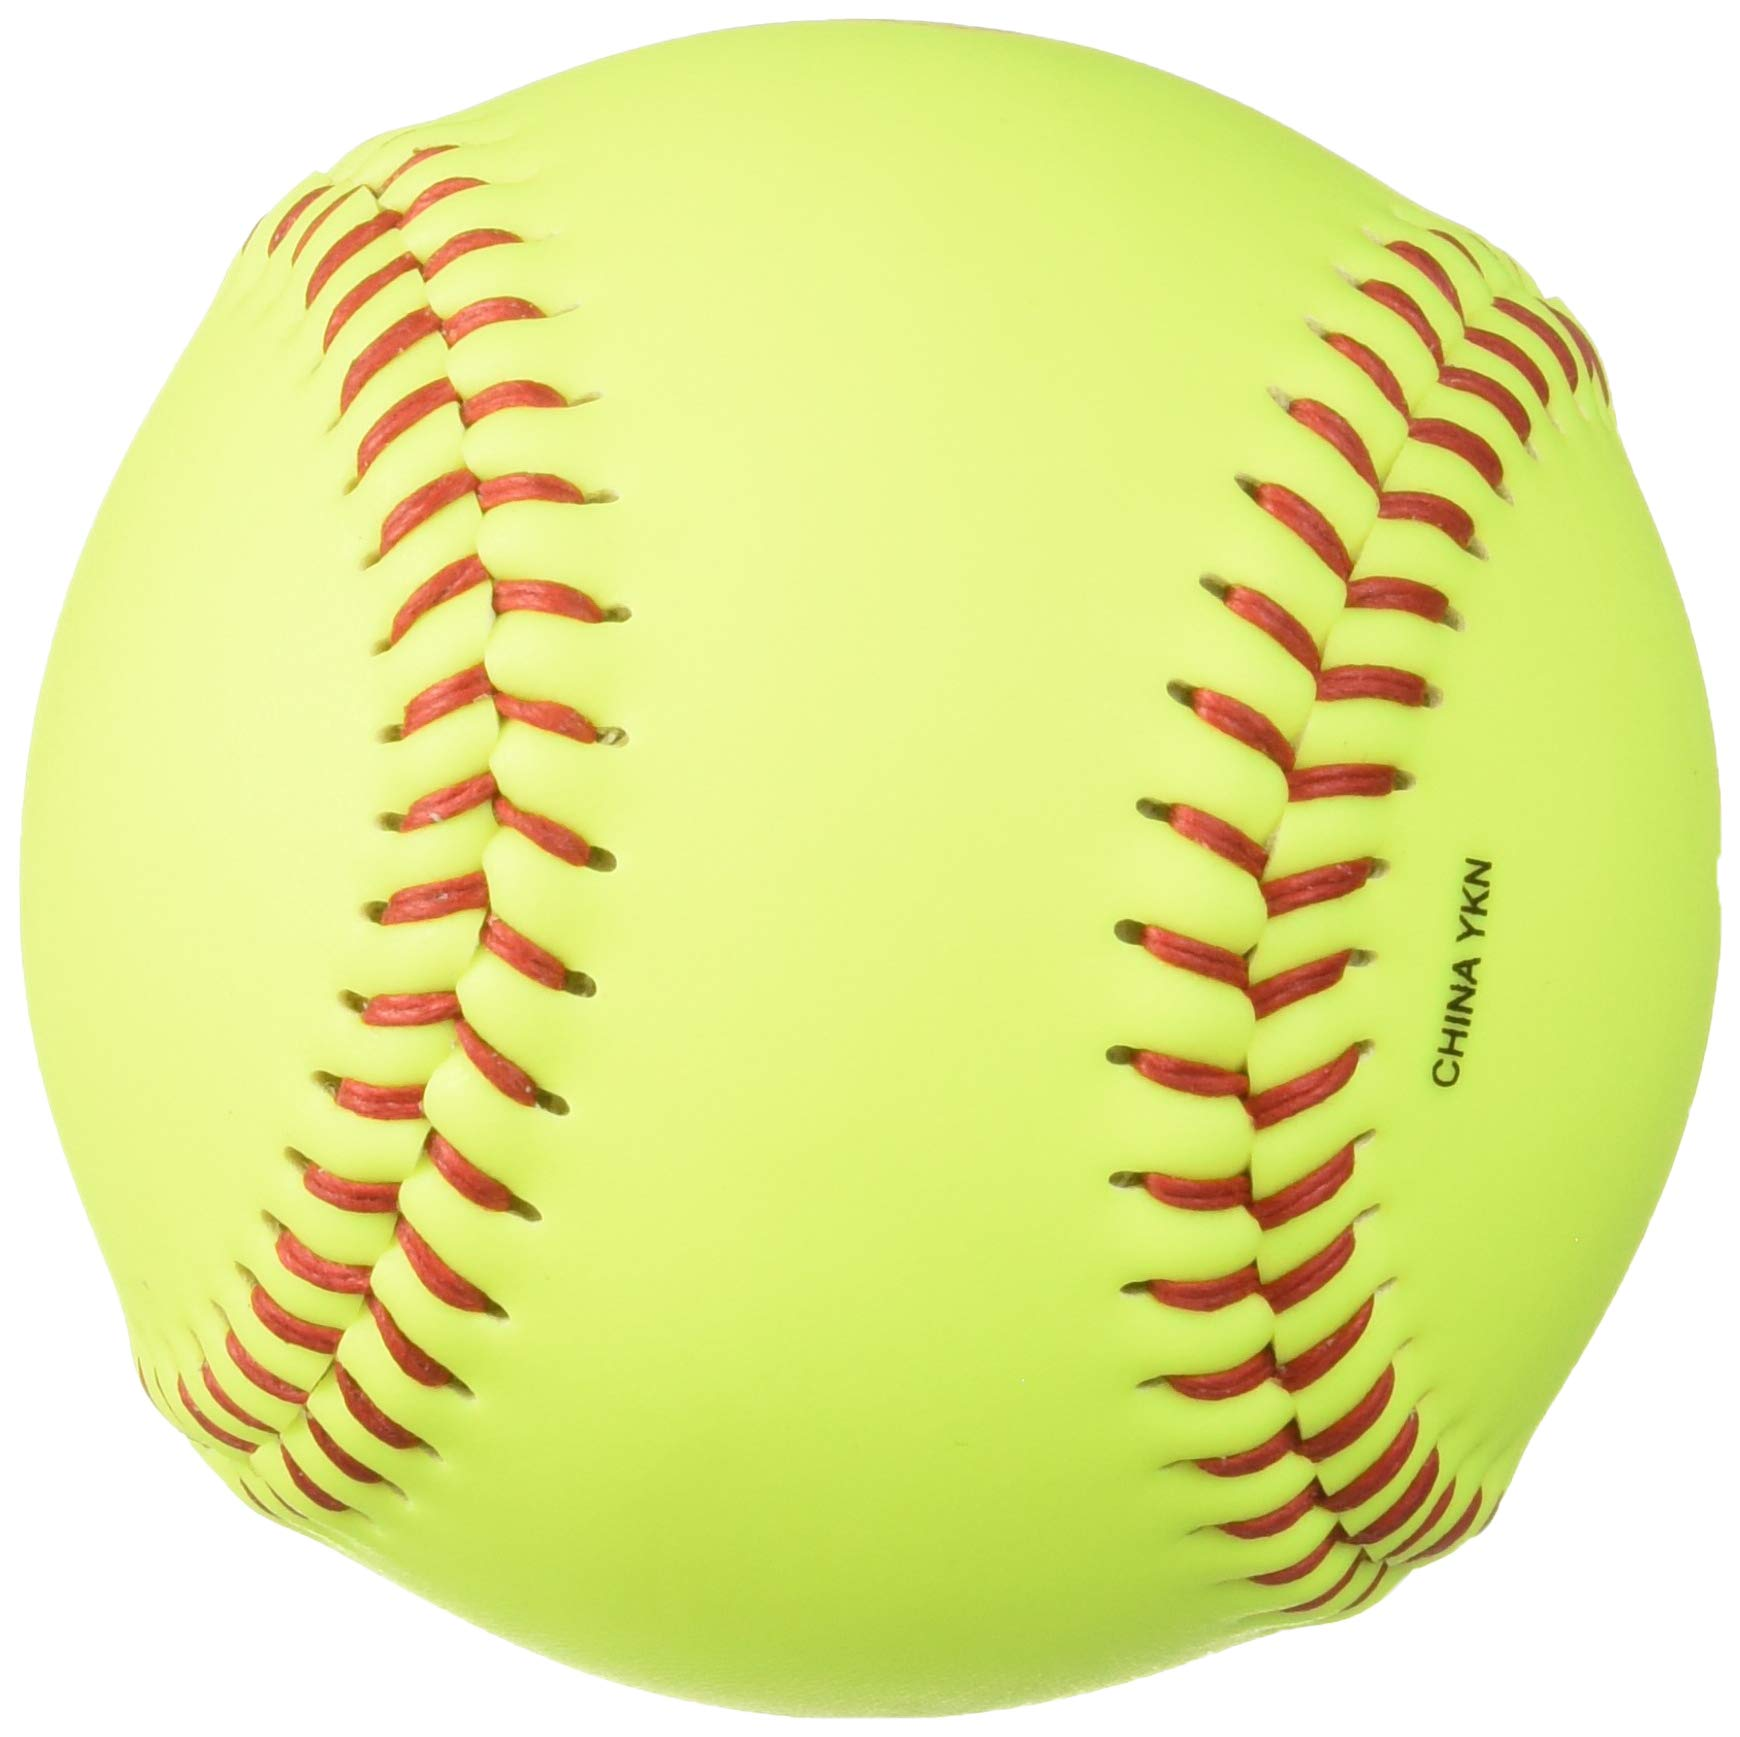 Wilson A9306 ASA Series Softball (12-Pack), 11-Inch, Optic Yellow by Wilson (Image #2)